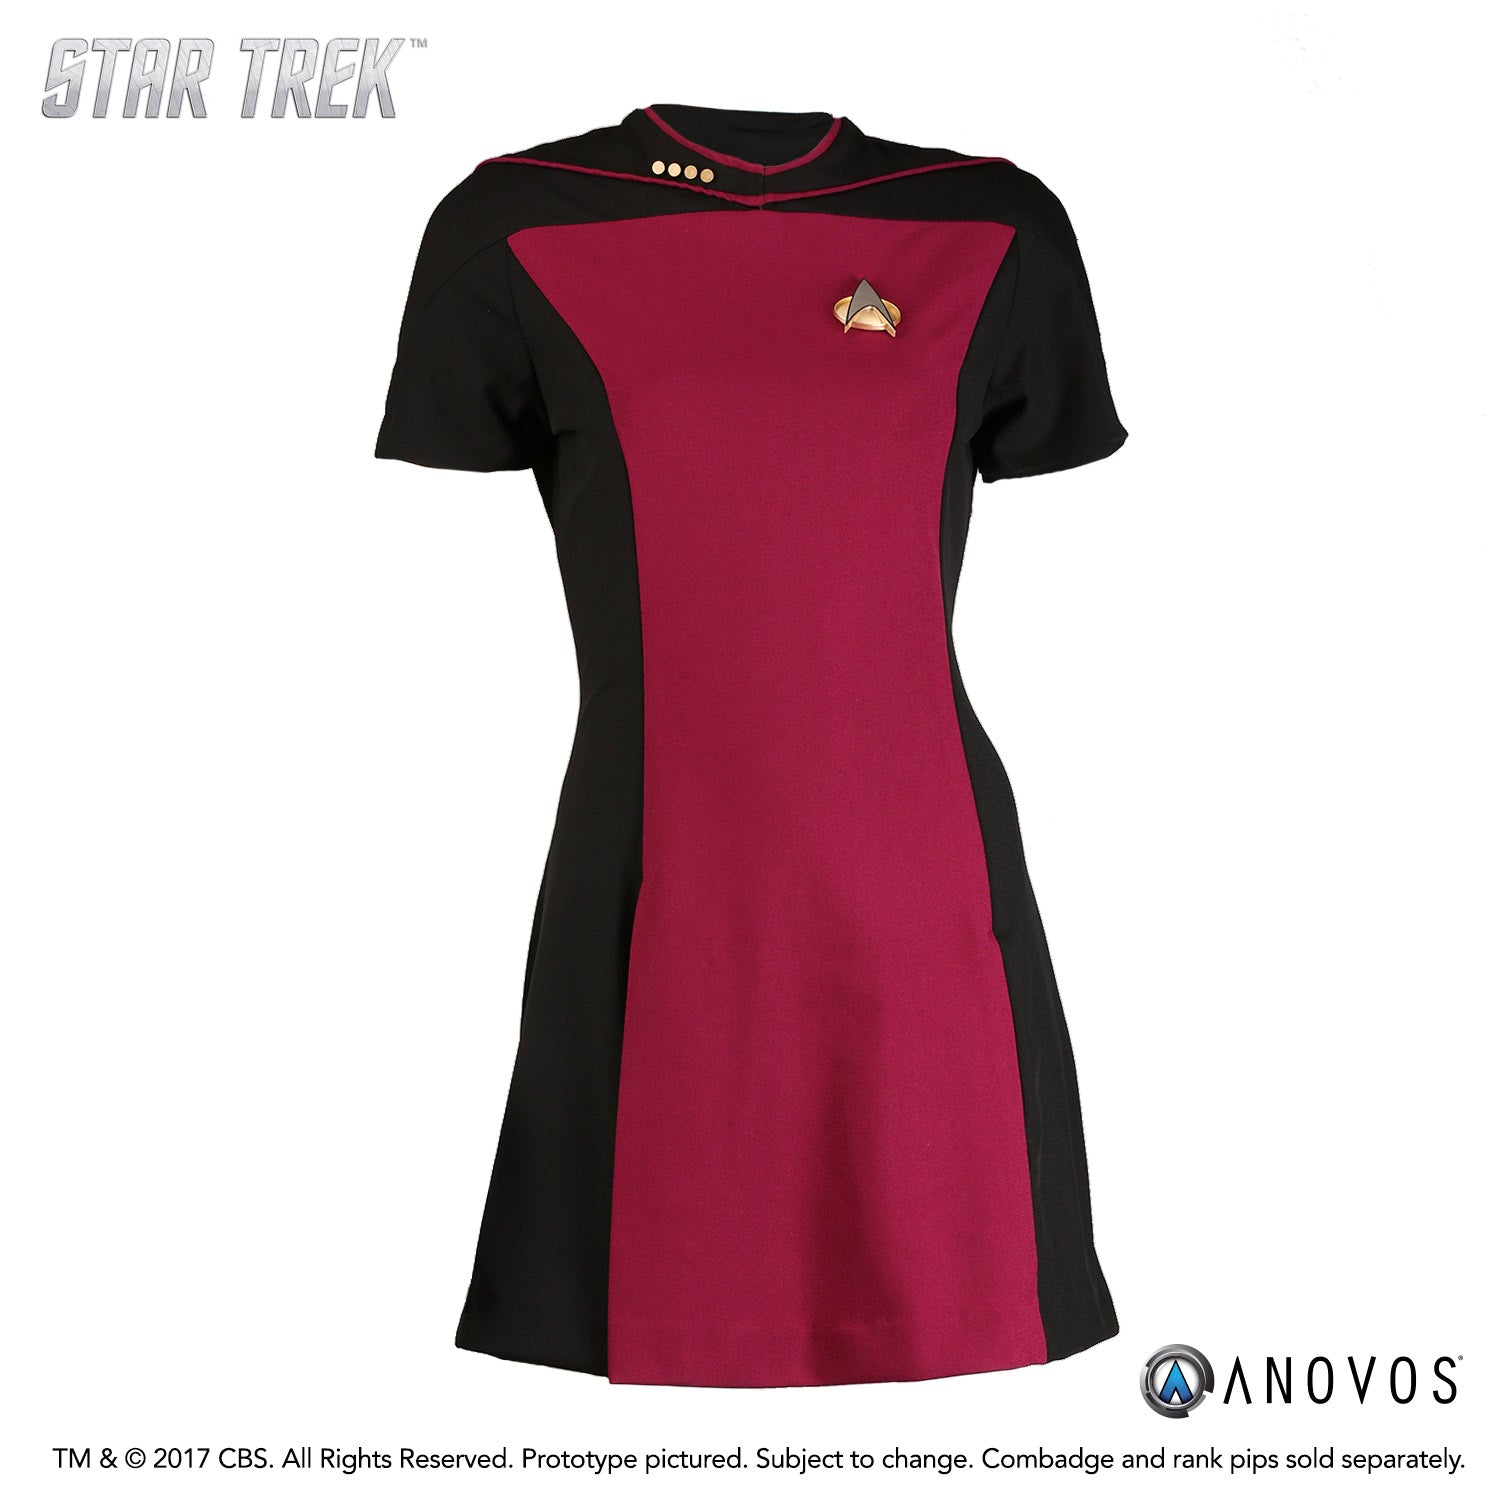 069ef88a0 STAR TREK: THE NEXT GENERATION Women's Skant Uniform